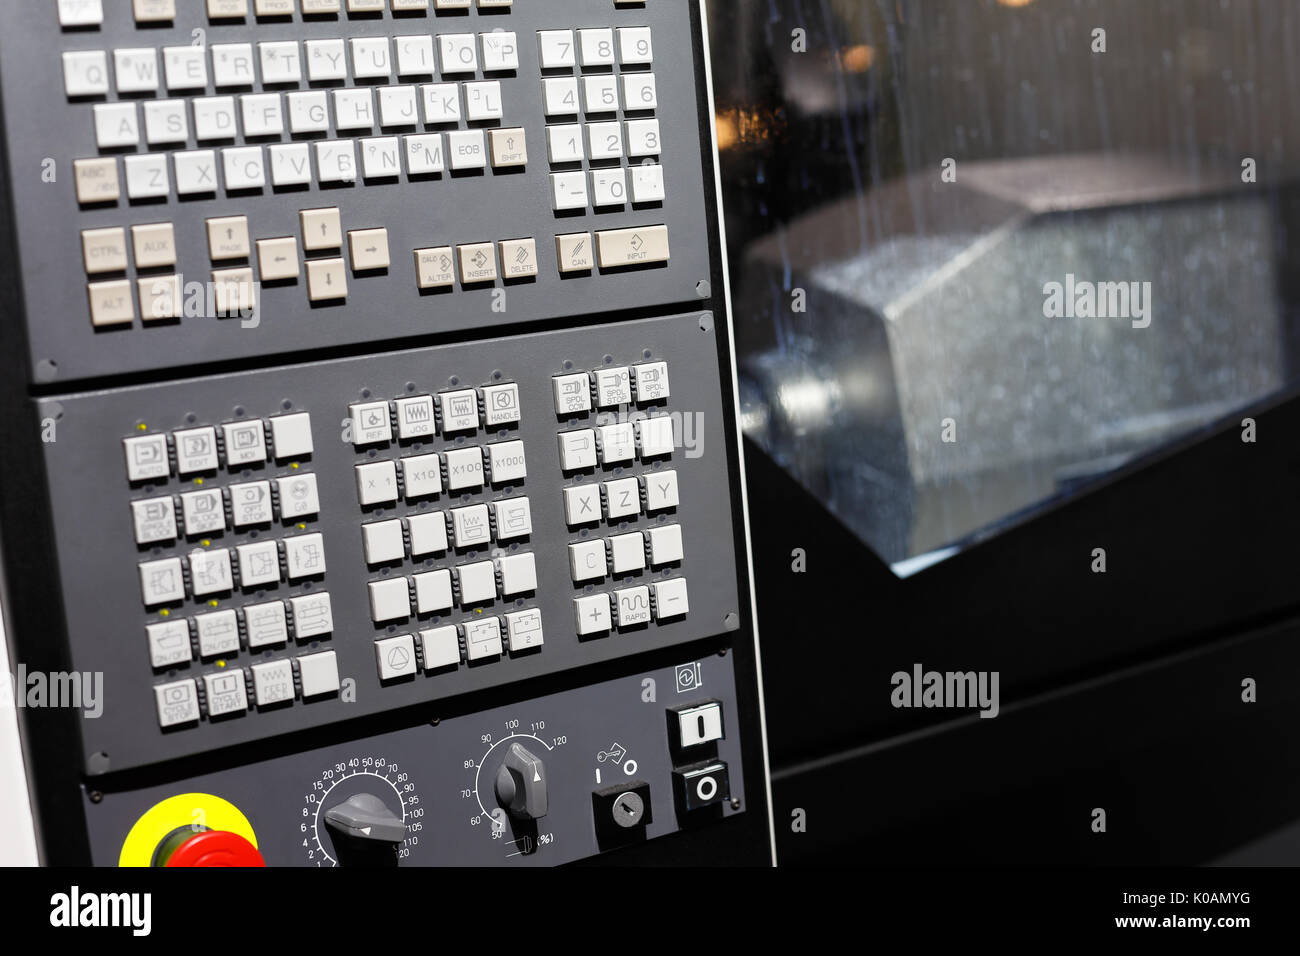 CNC machining center with control panel on the foreground. Selective focus. - Stock Image